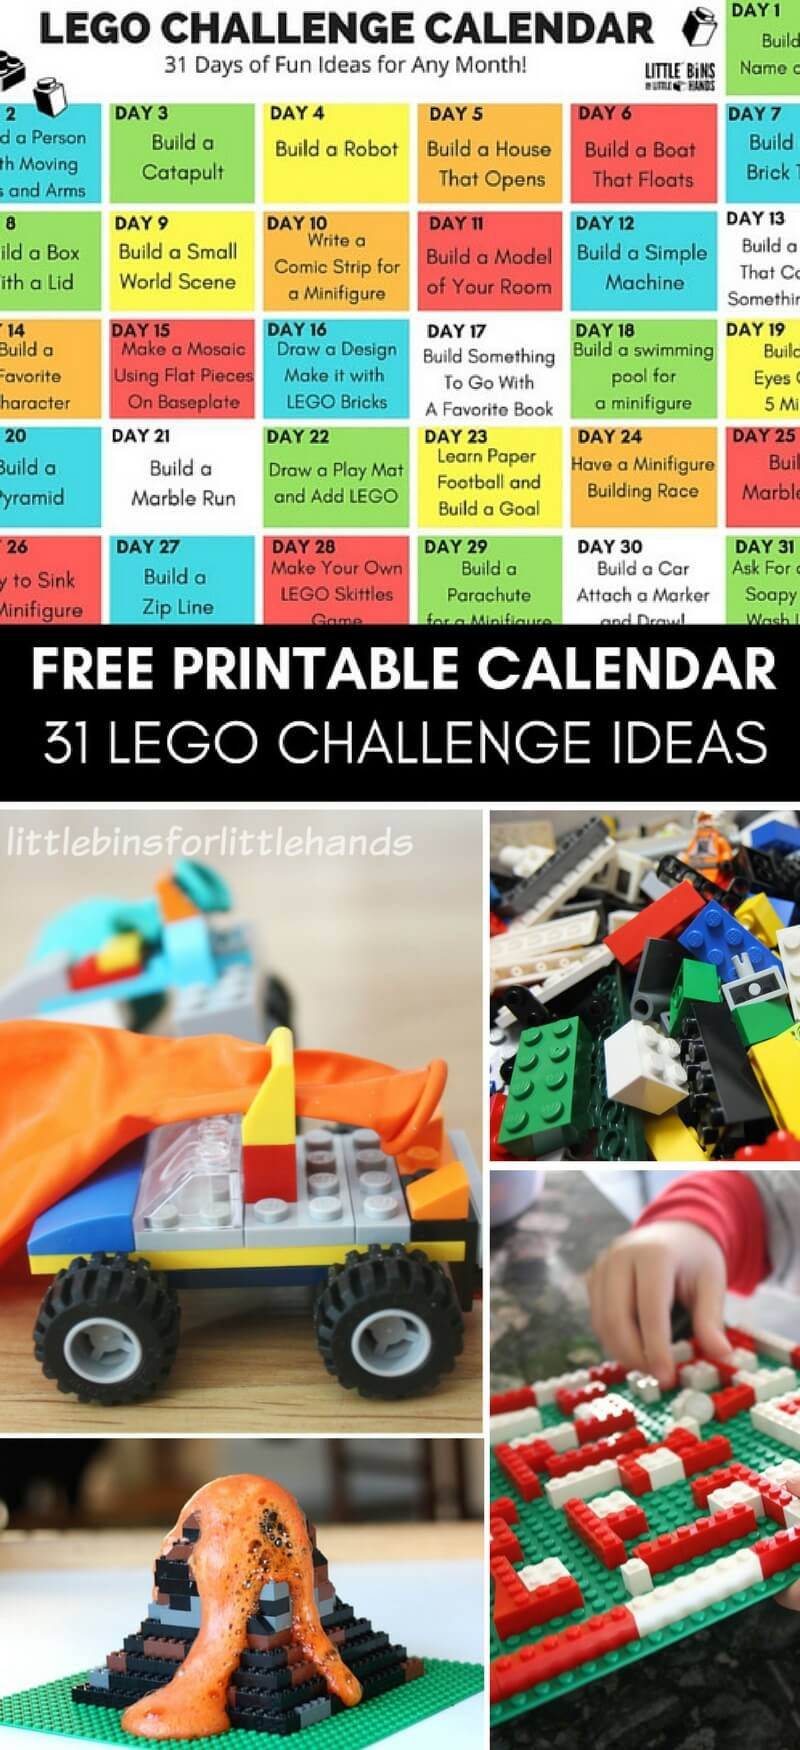 free printable lego challenge calendar for kids our 31 day lego calendar is filled with